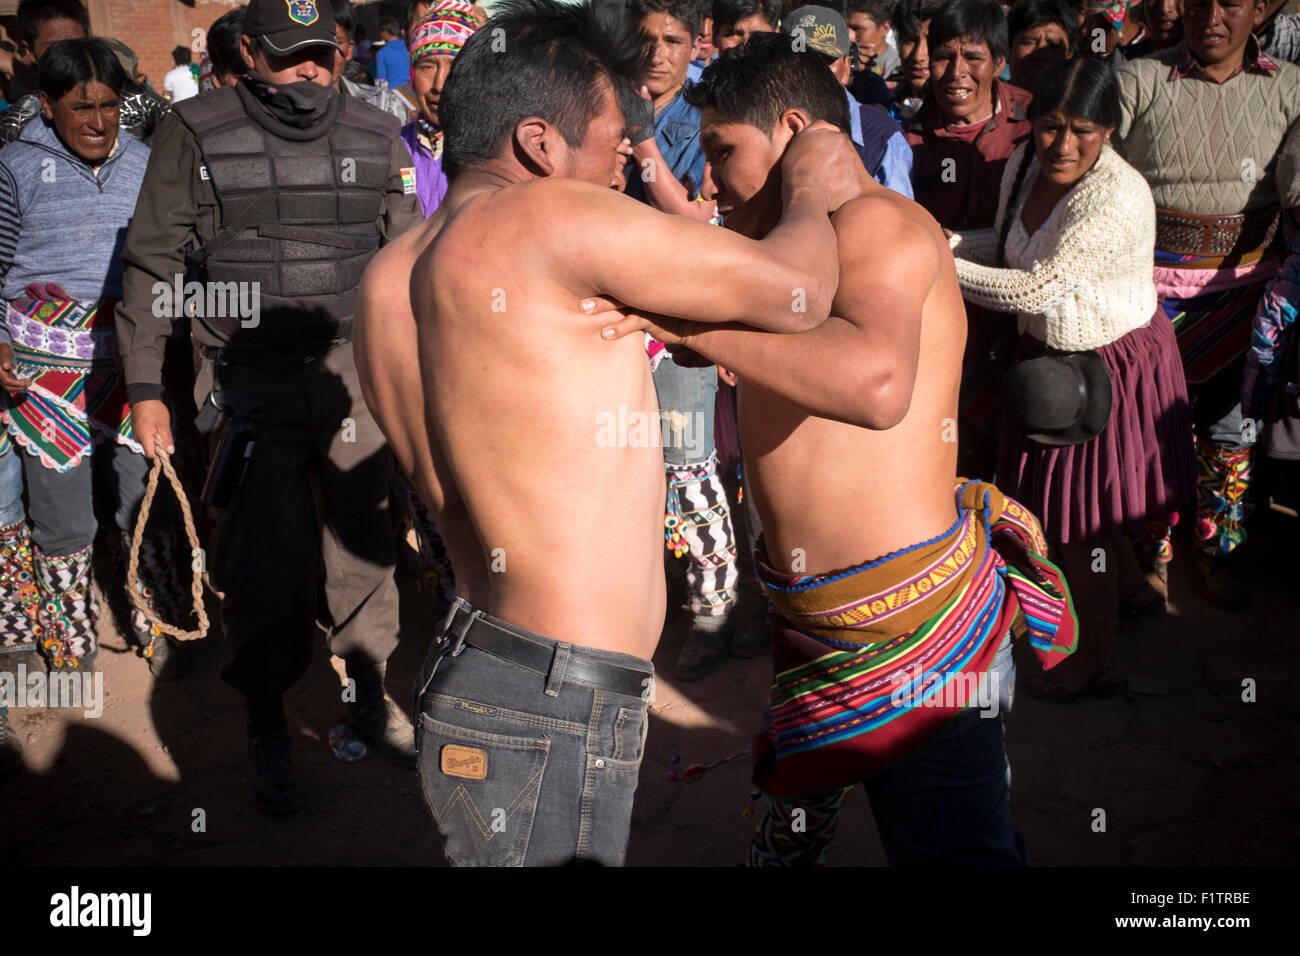 During the celebration of Tinku, fights start among the attendees, either individually or in a group fighting. - Stock Image